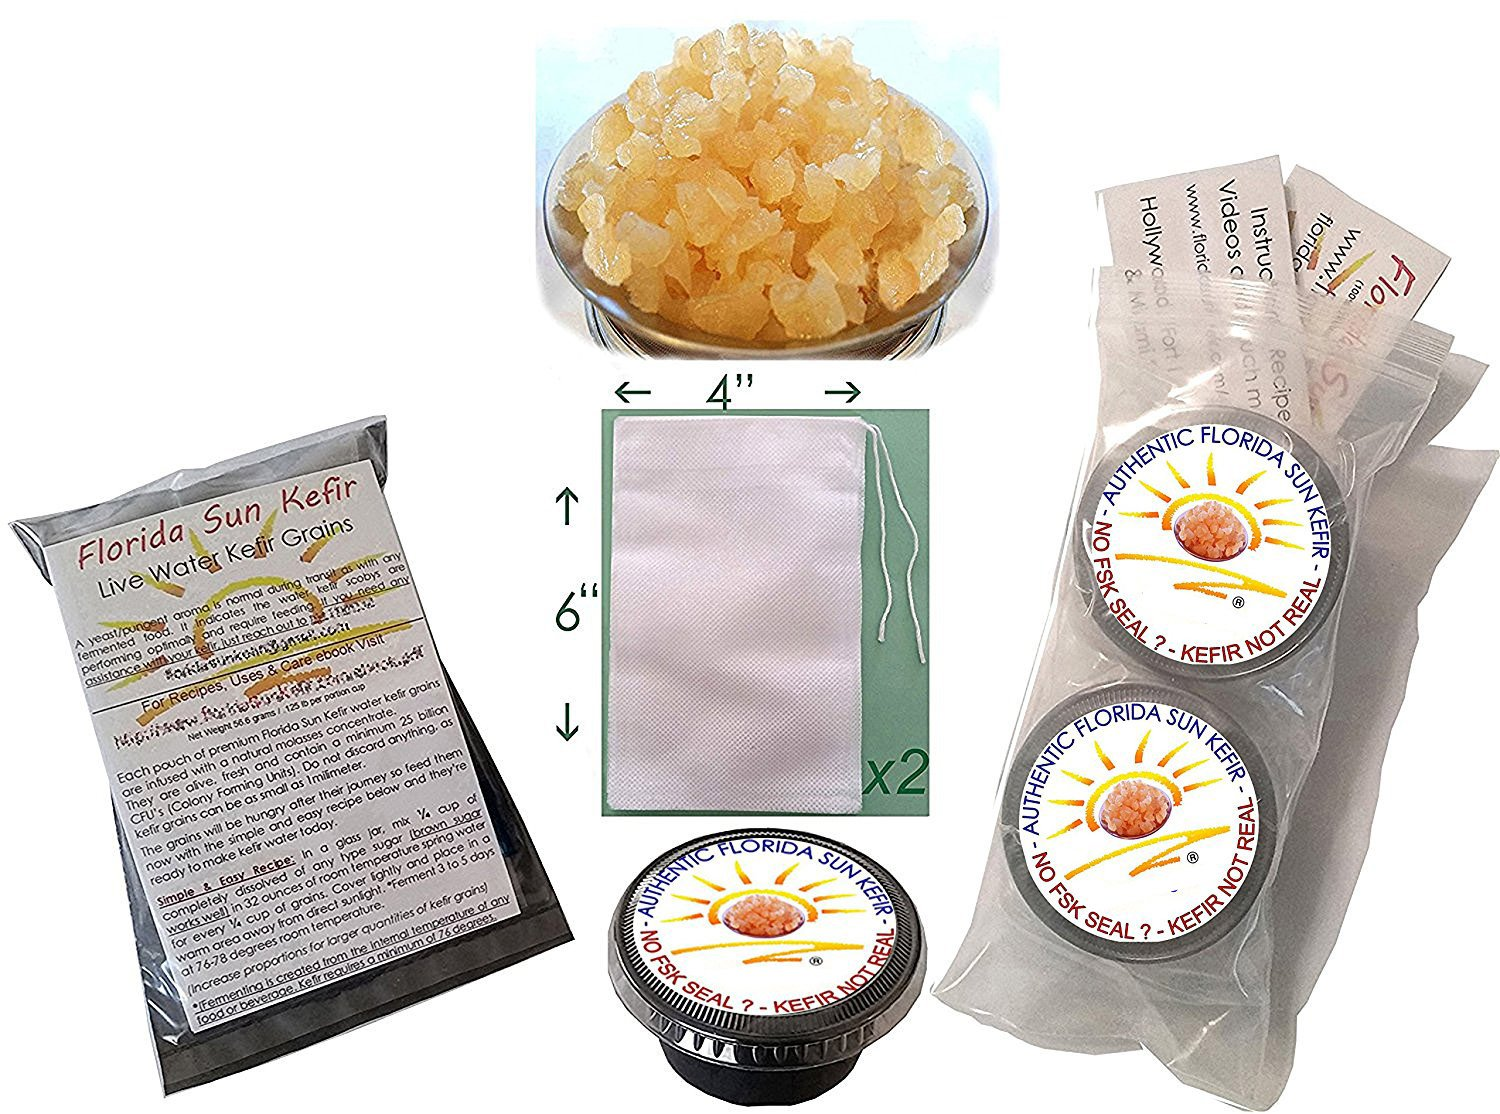 1/2 Cup Organic Original Water Kefir Grains Exclusively from Florida Sun Kefir with 2 Brewing Bags